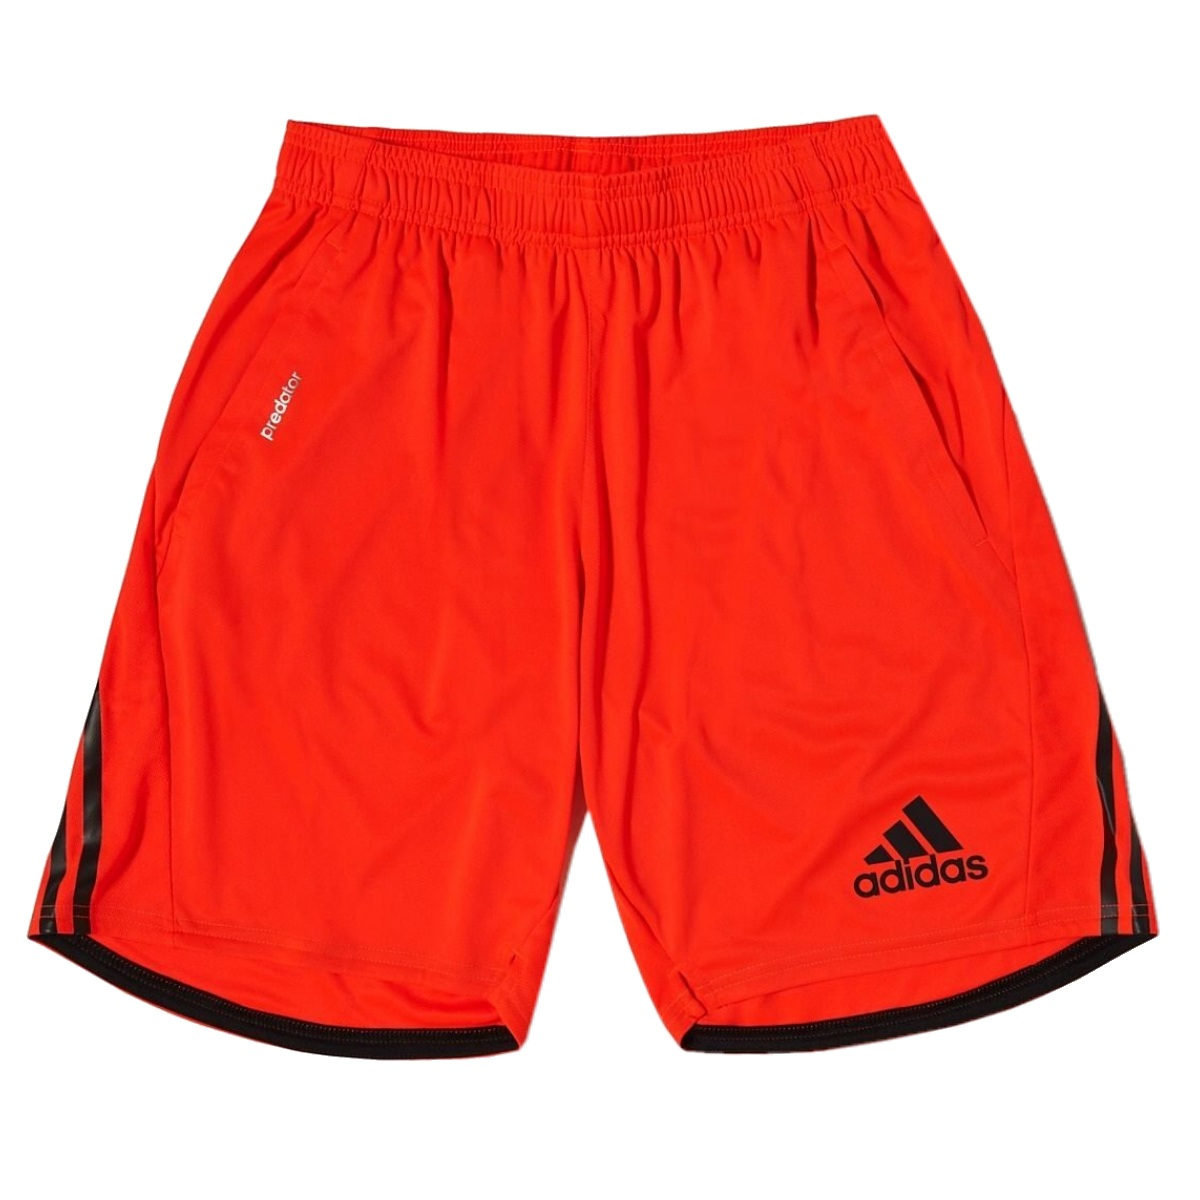 adidas predator trainingsshorts herren kurze hose shorts. Black Bedroom Furniture Sets. Home Design Ideas